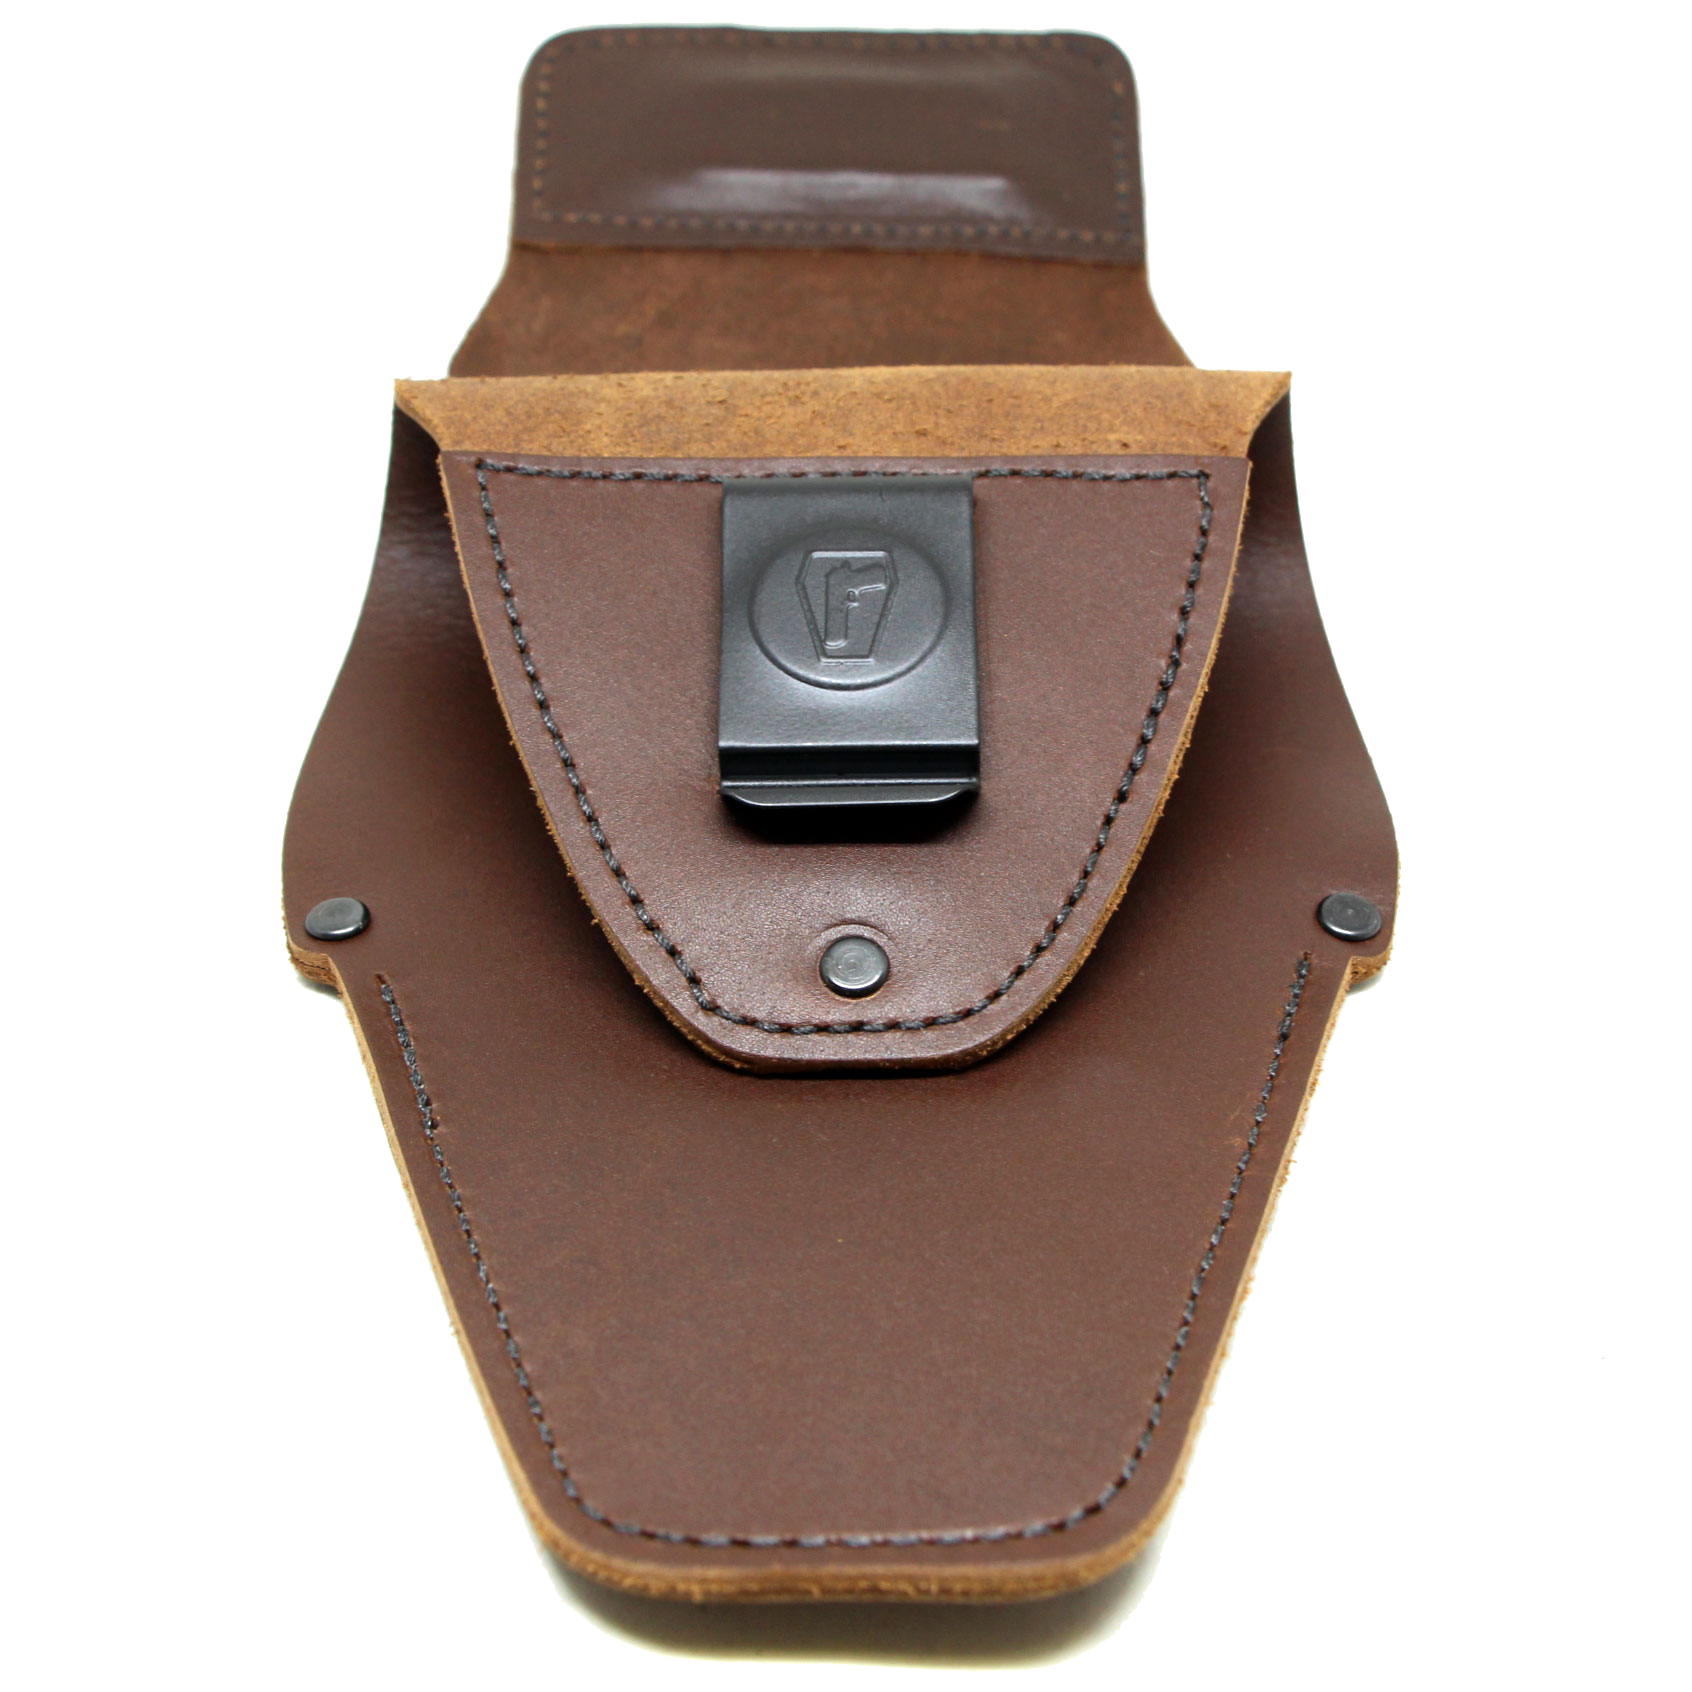 New G2 Concealed Holster by Urban Carry